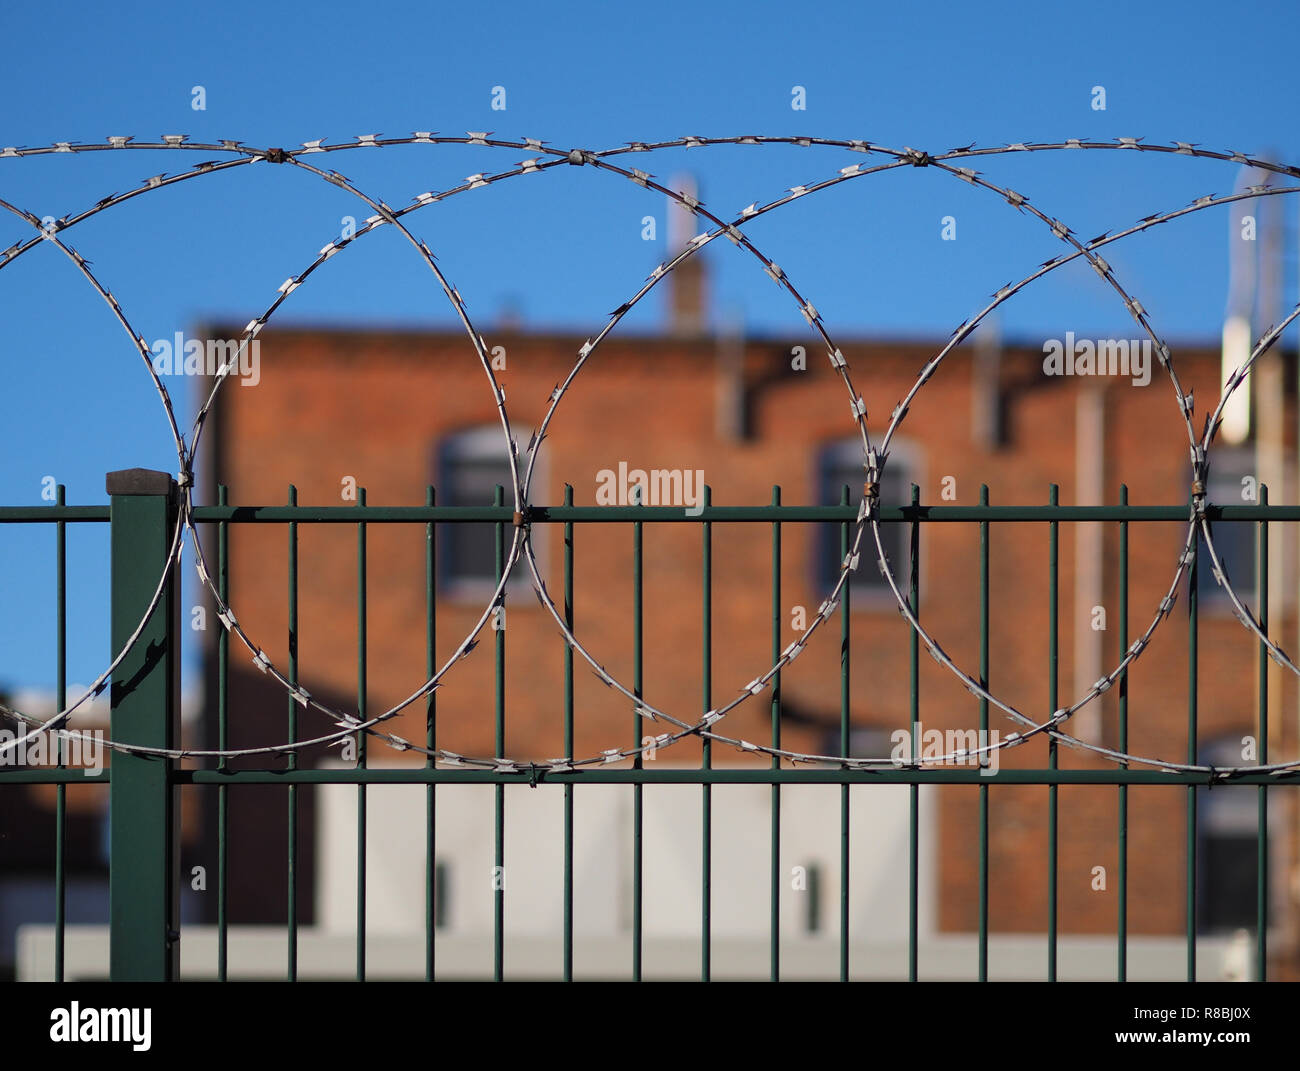 Green steel fence with barbed wire on top and red brick building in the background (out of focus) - Stock Image